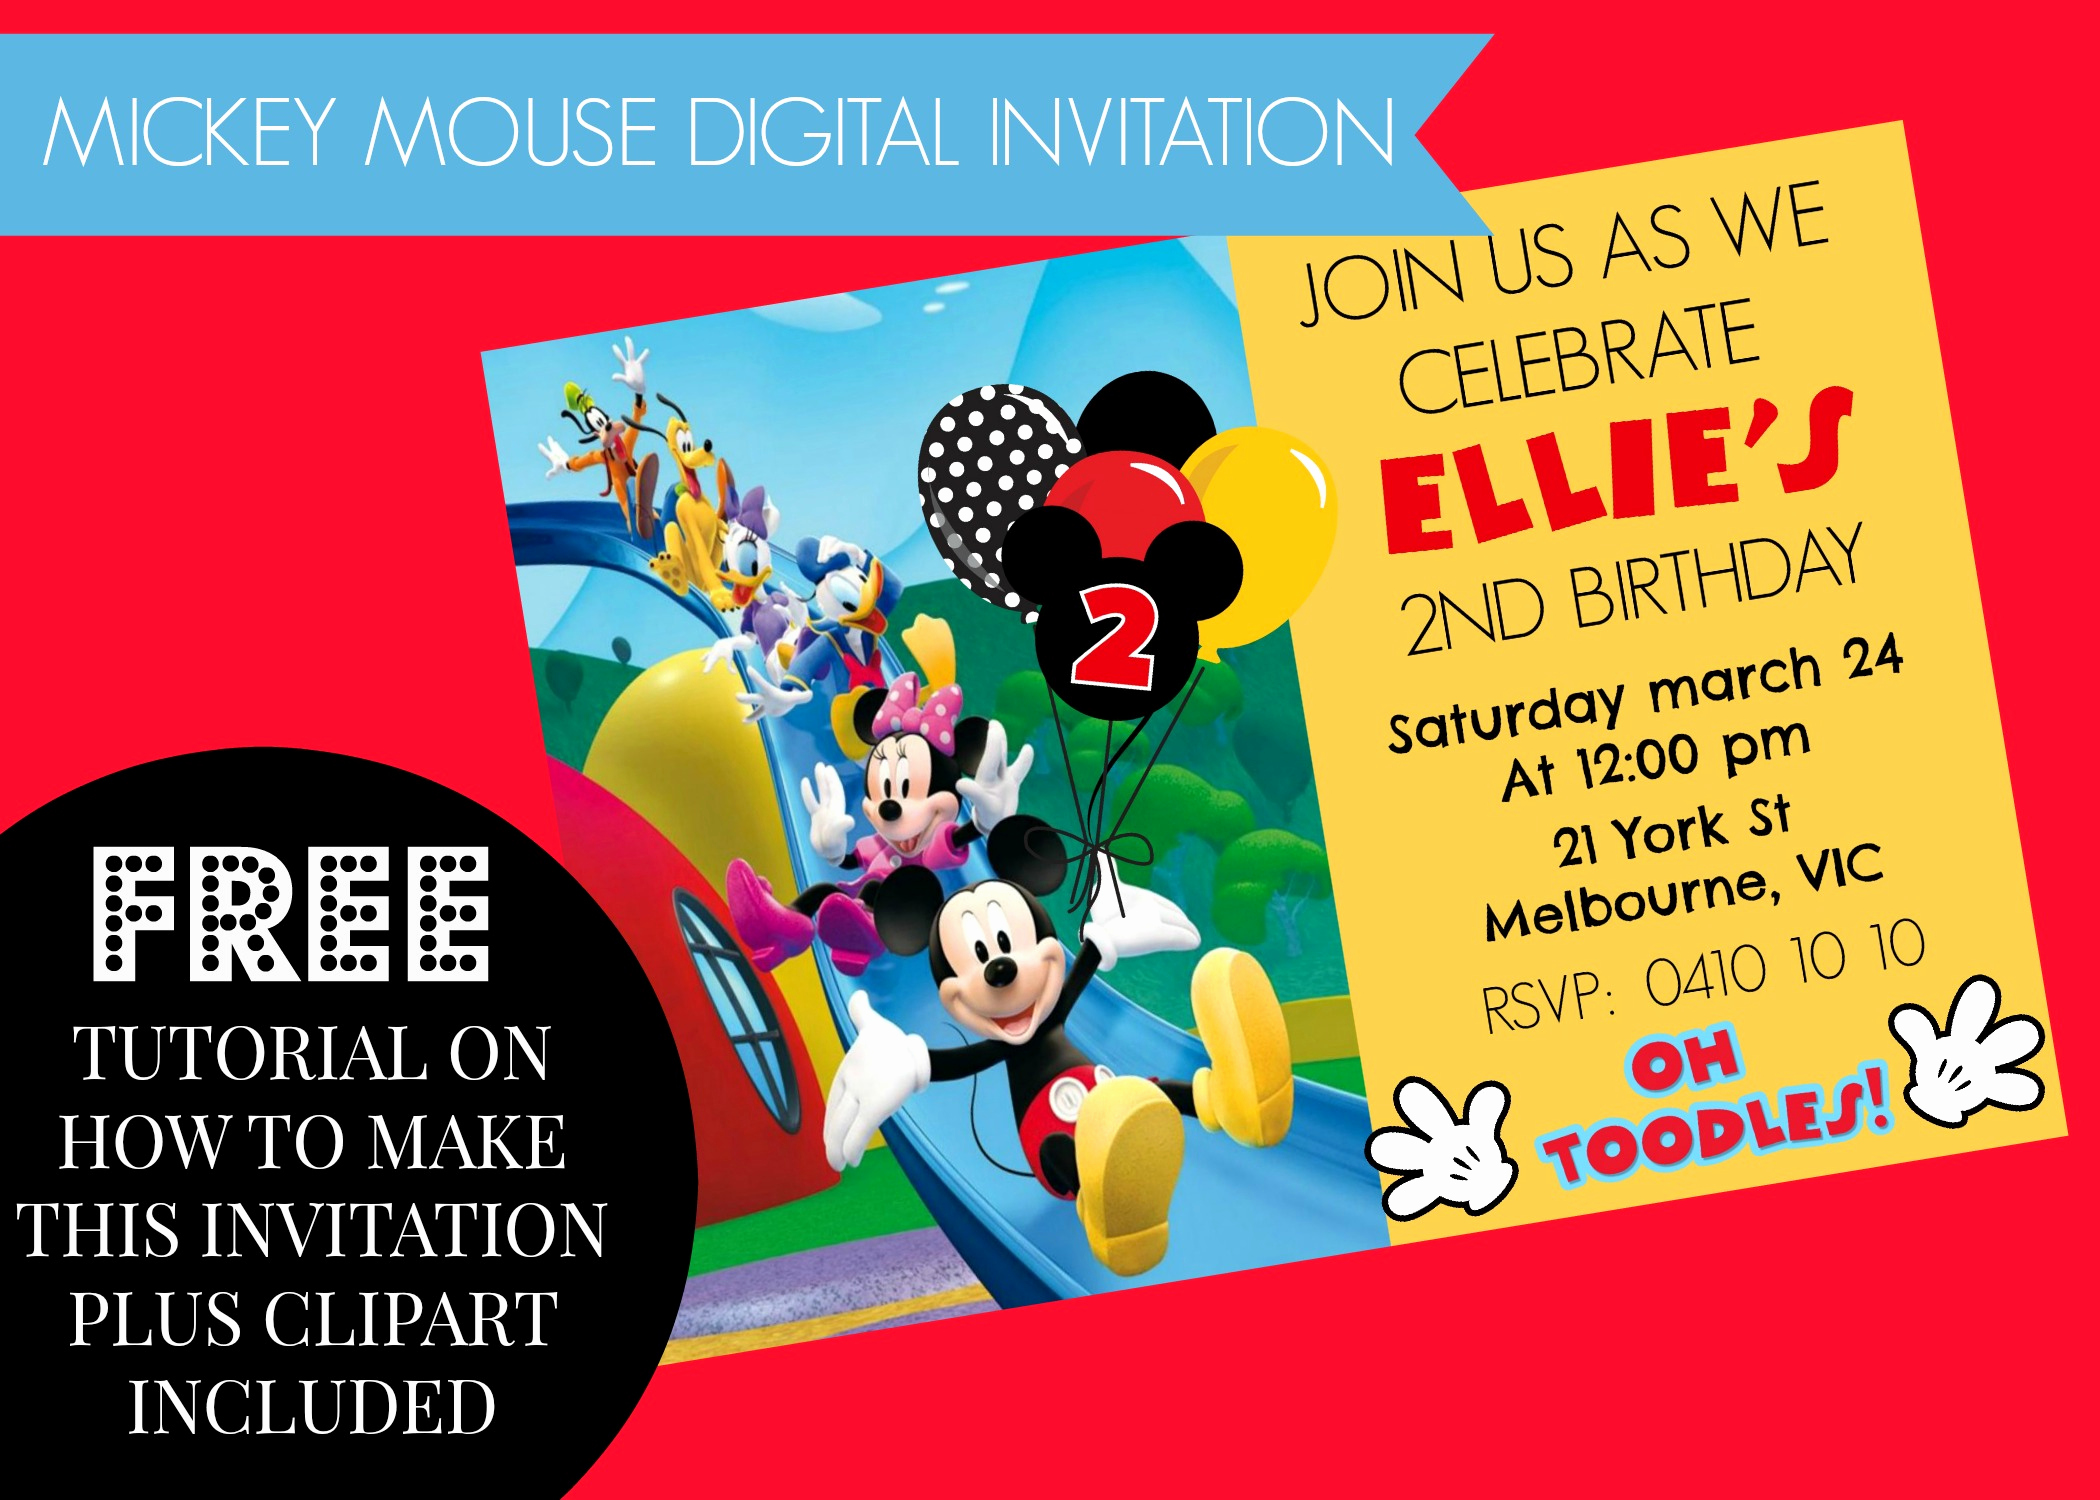 Mickey Mouse Clubhouse Invitation Lovely How to Make Mickey Mouse Clubhouse Digital Invitation Step